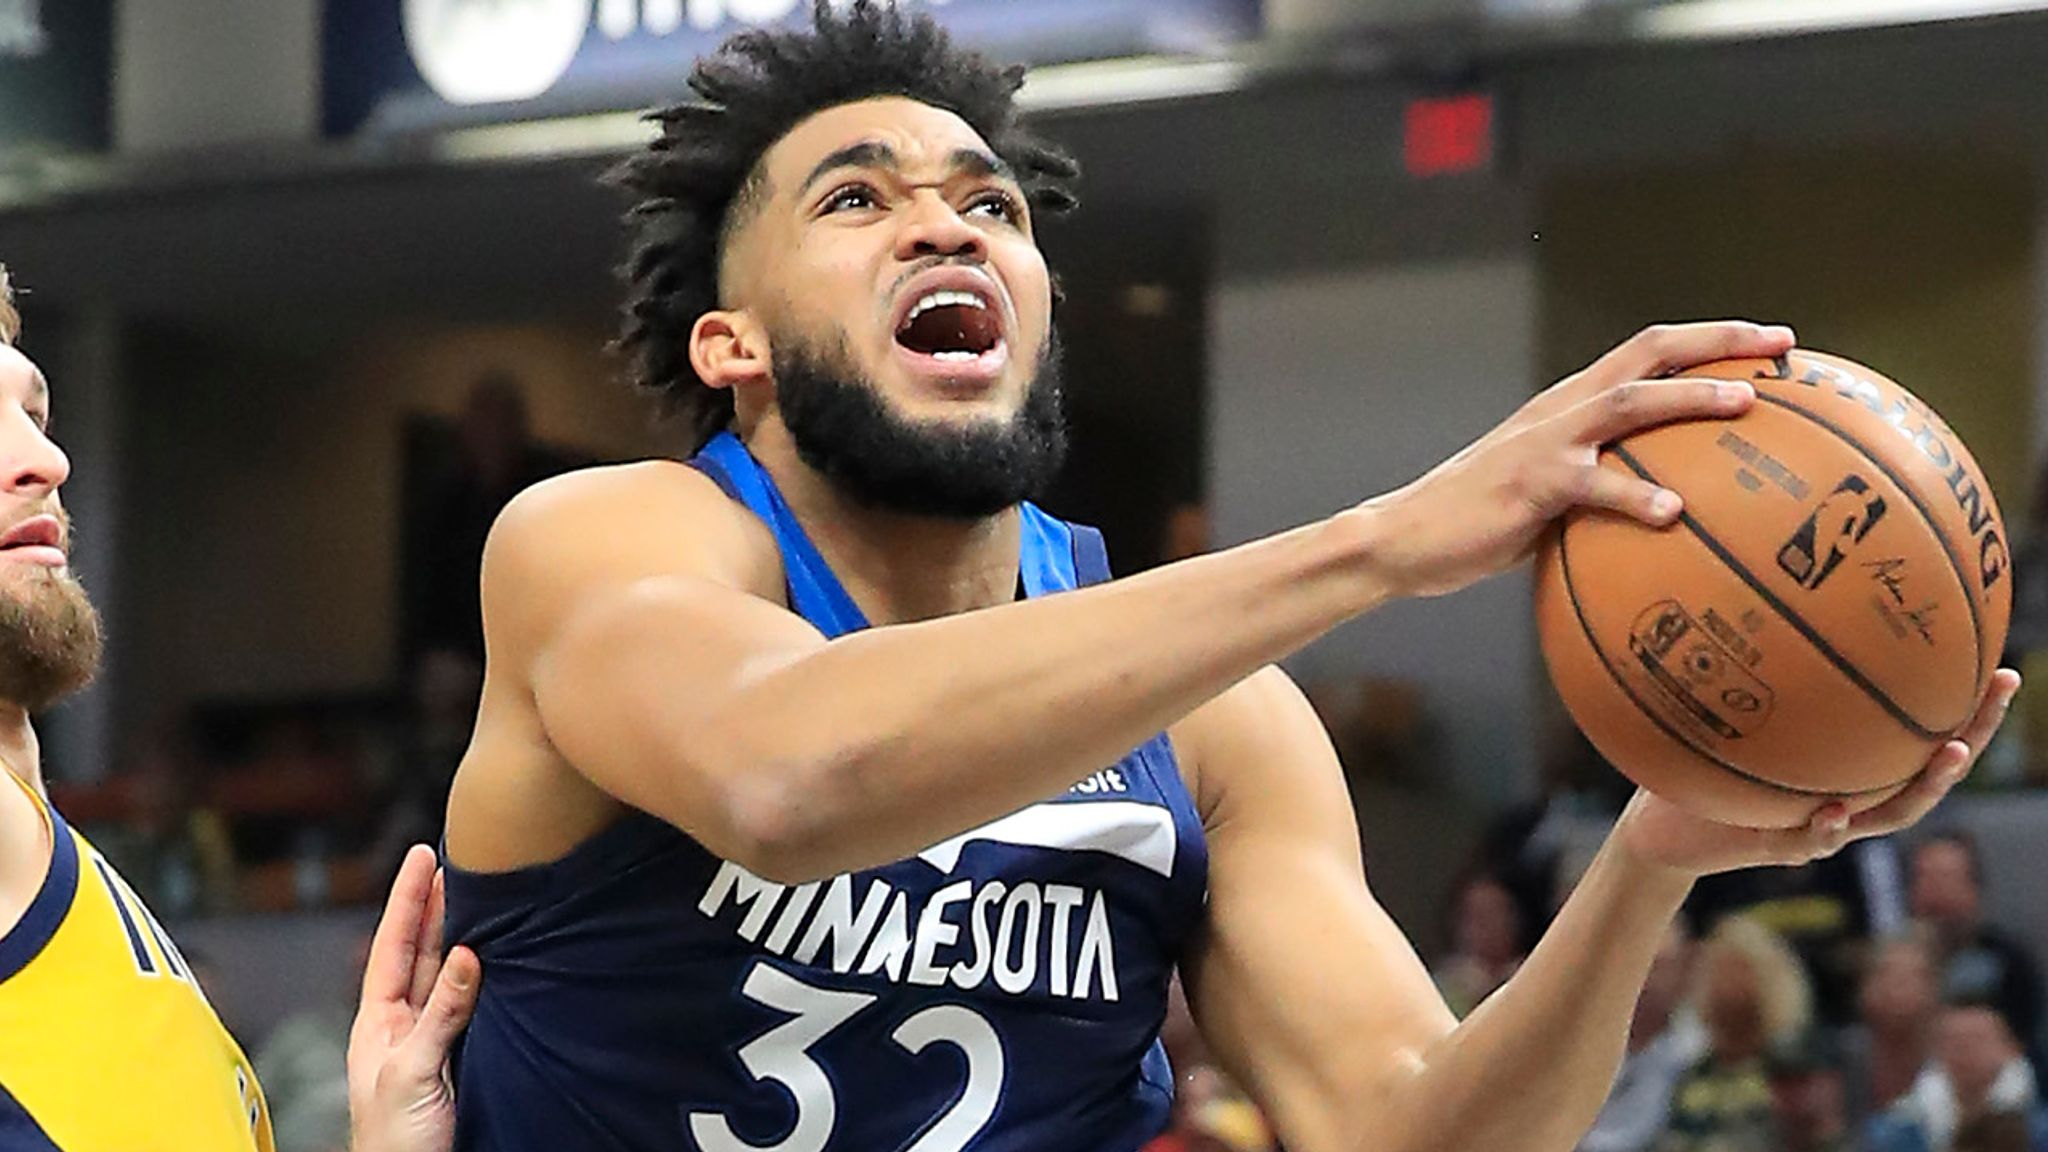 Karl-Anthony Towns drops 27 points on Minnesota Timberwolves return following knee injury